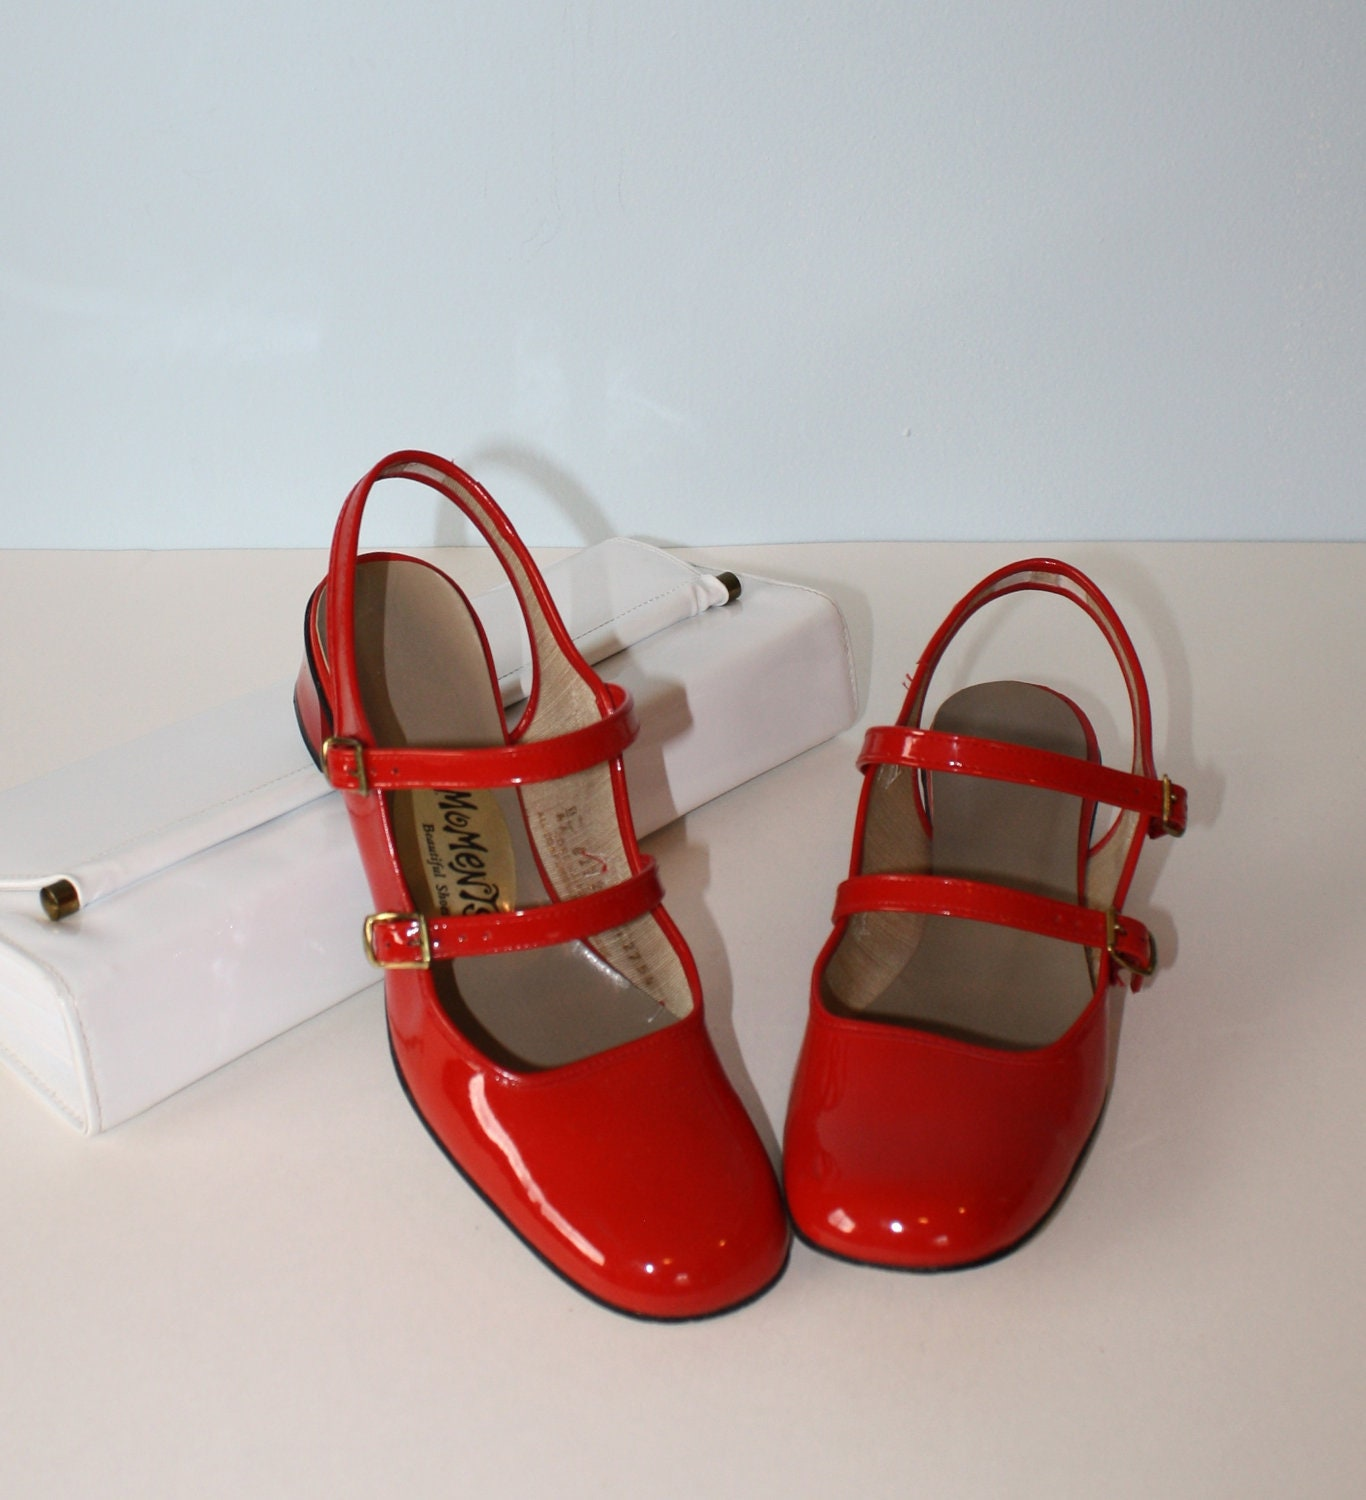 1960s Shoes Vintage Red Patent Mary Jane Sling Back Pumps